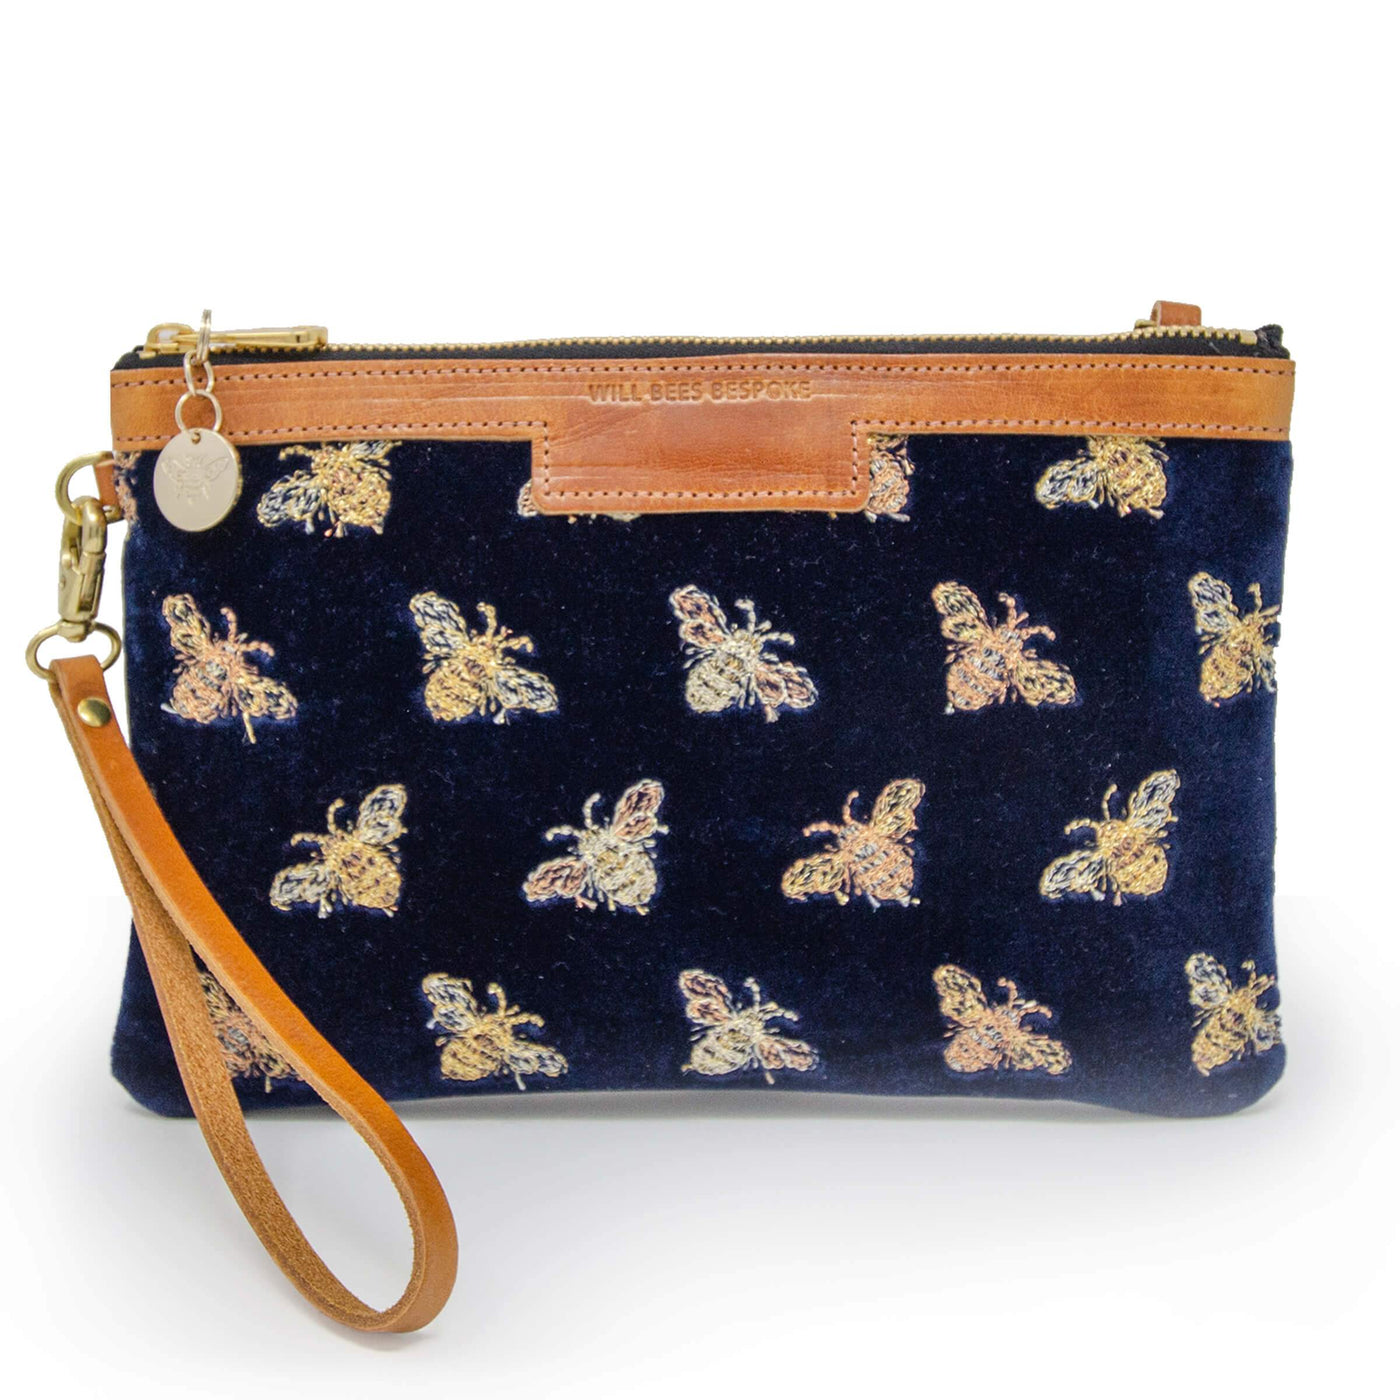 Premium Diana Clutch - Classic Bees on Navy Velvet